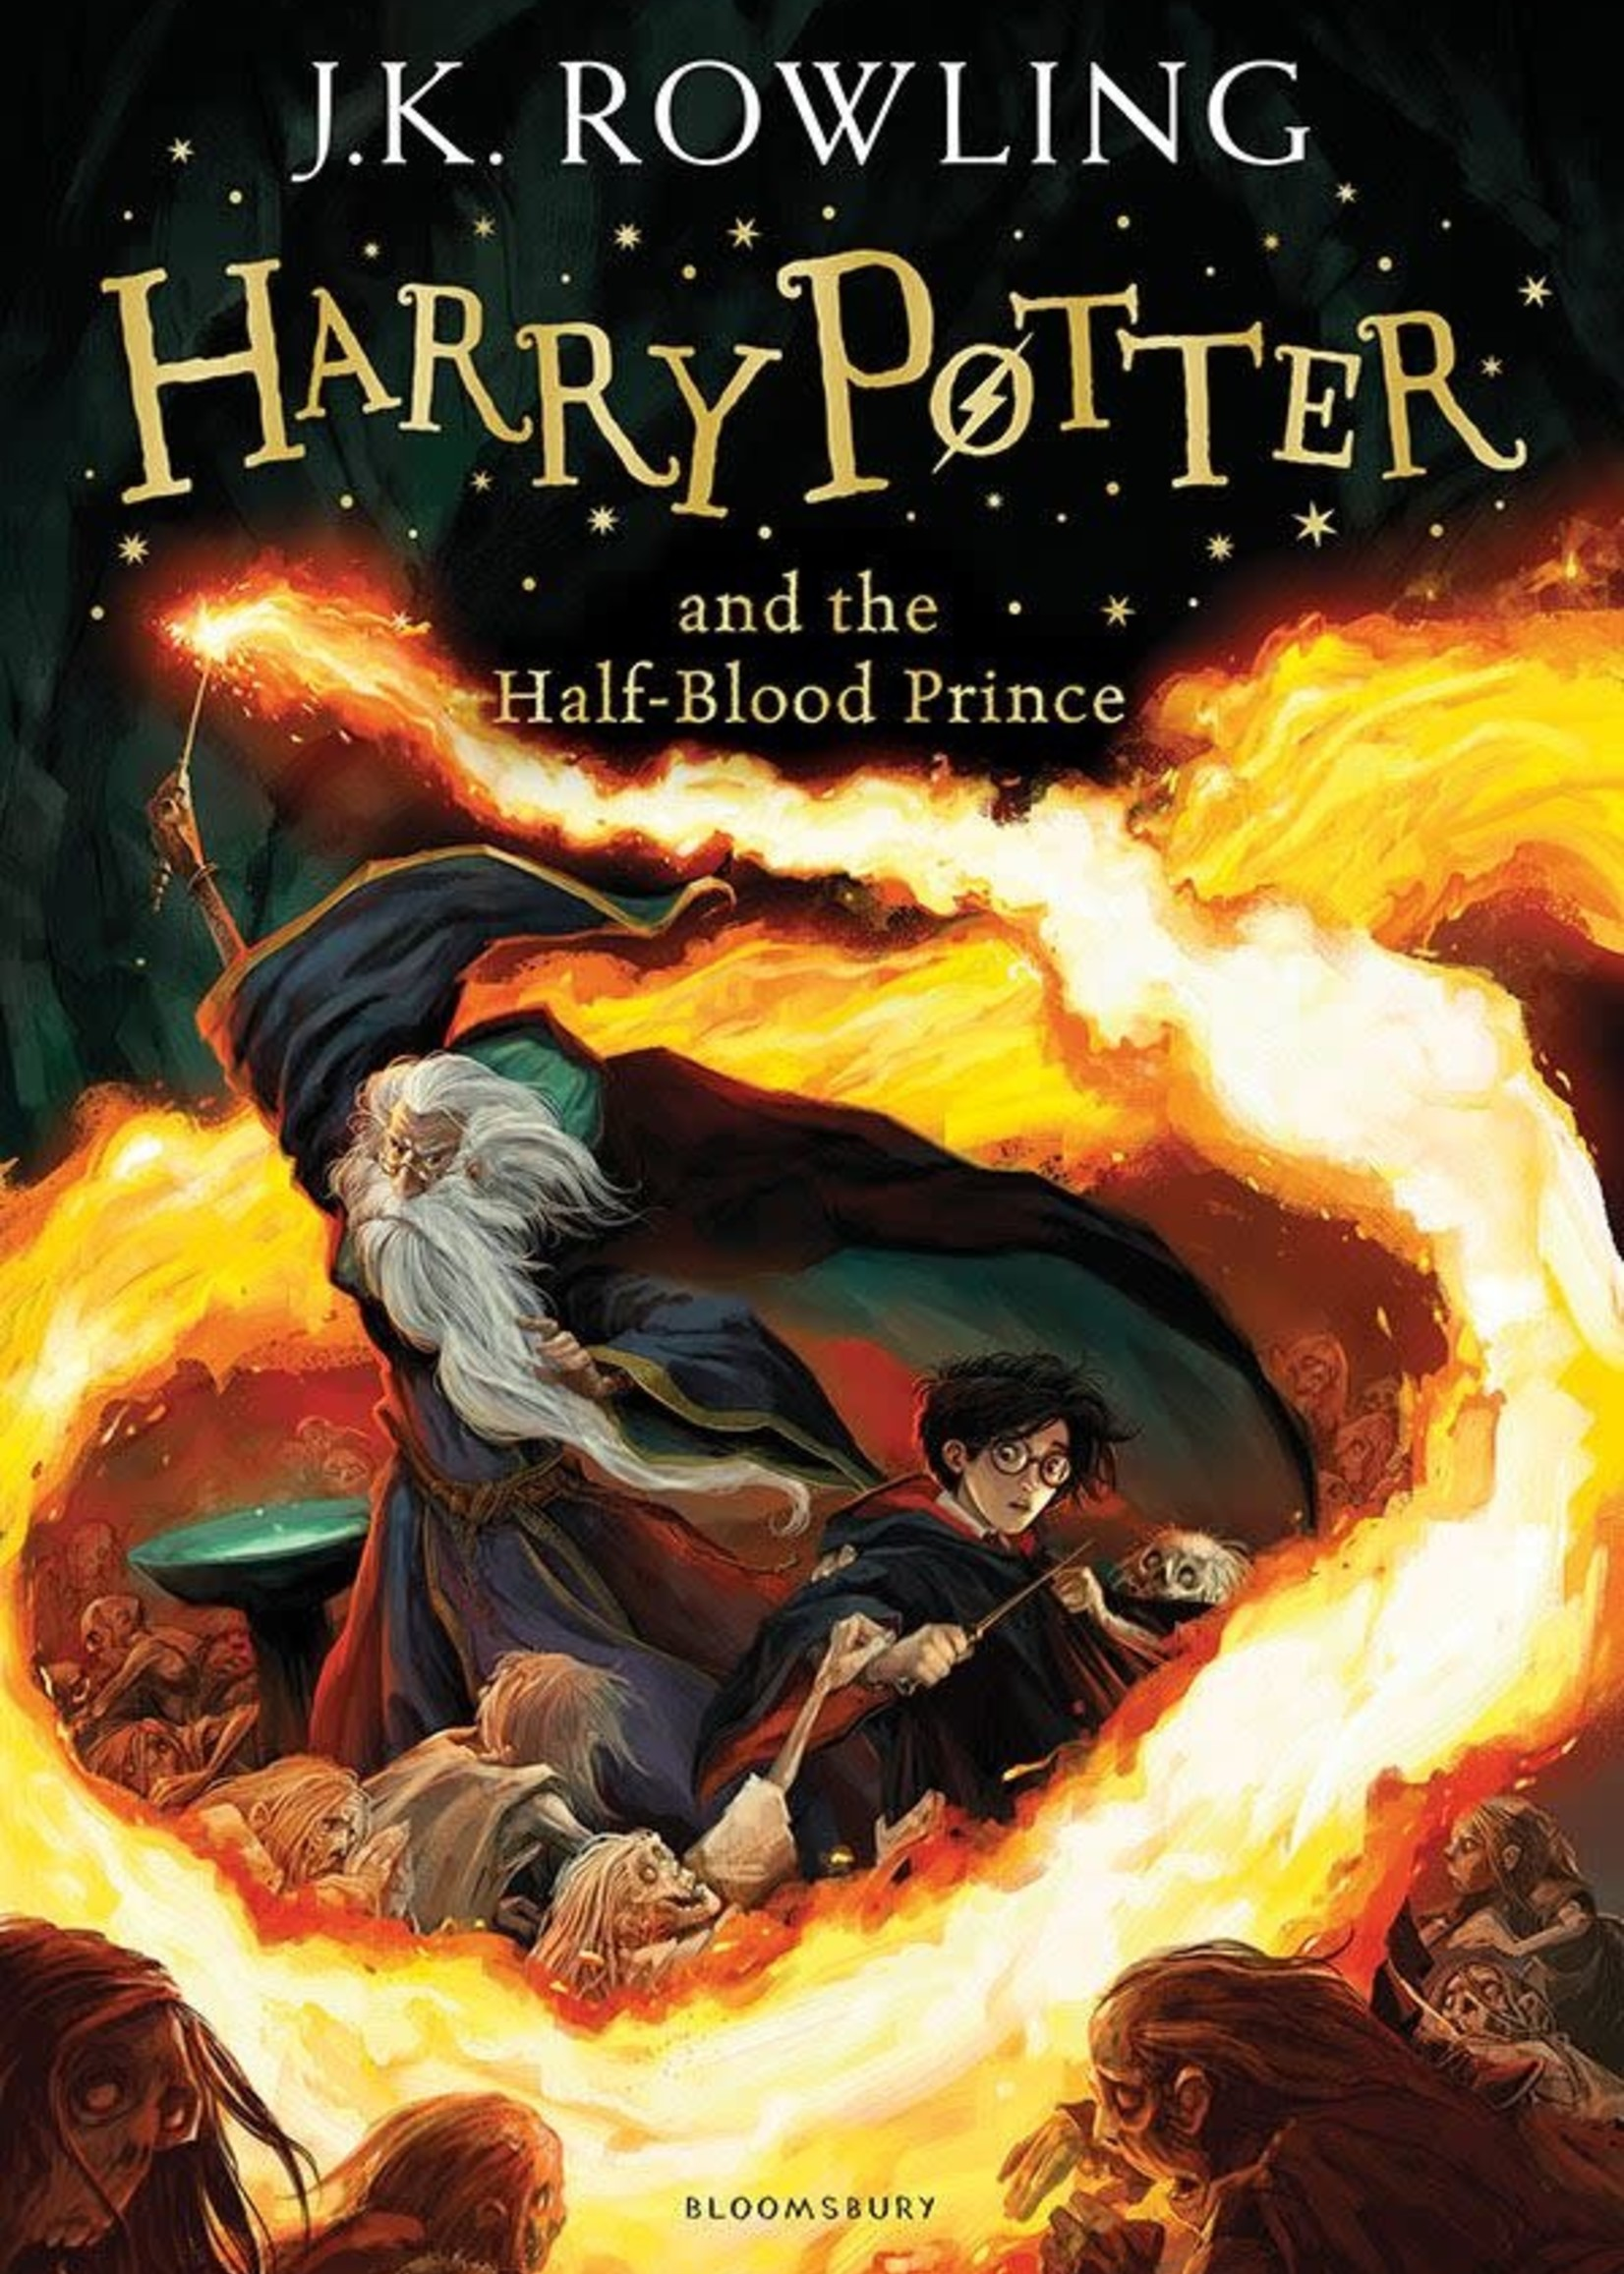 Harry Potter and the Half-Blood Prince (Harry Potter #6) by J.K. Rowling